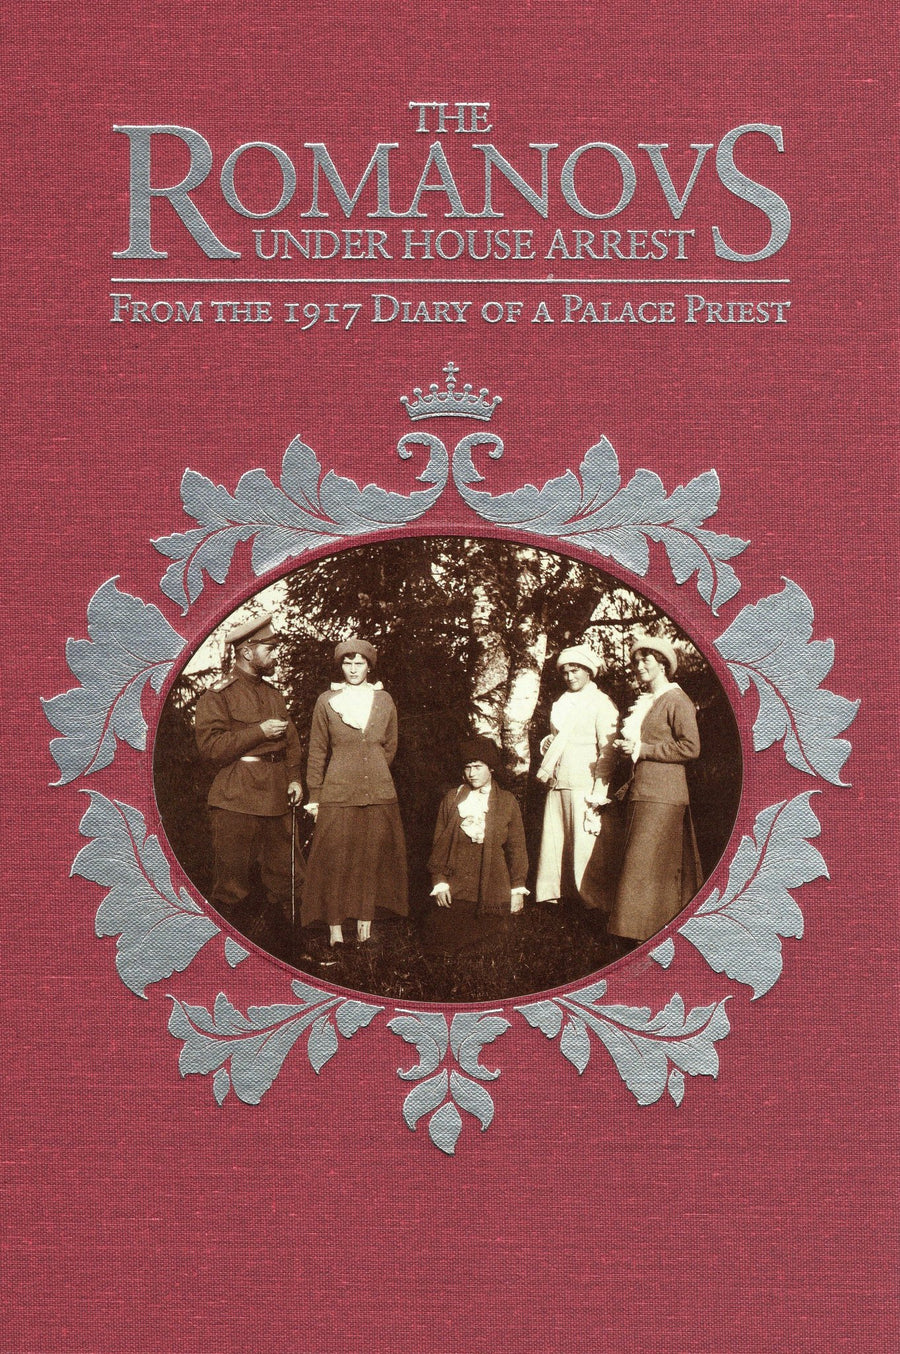 The Romanovs Under House Arrest - From the 1917 Diary of a Palace Priest